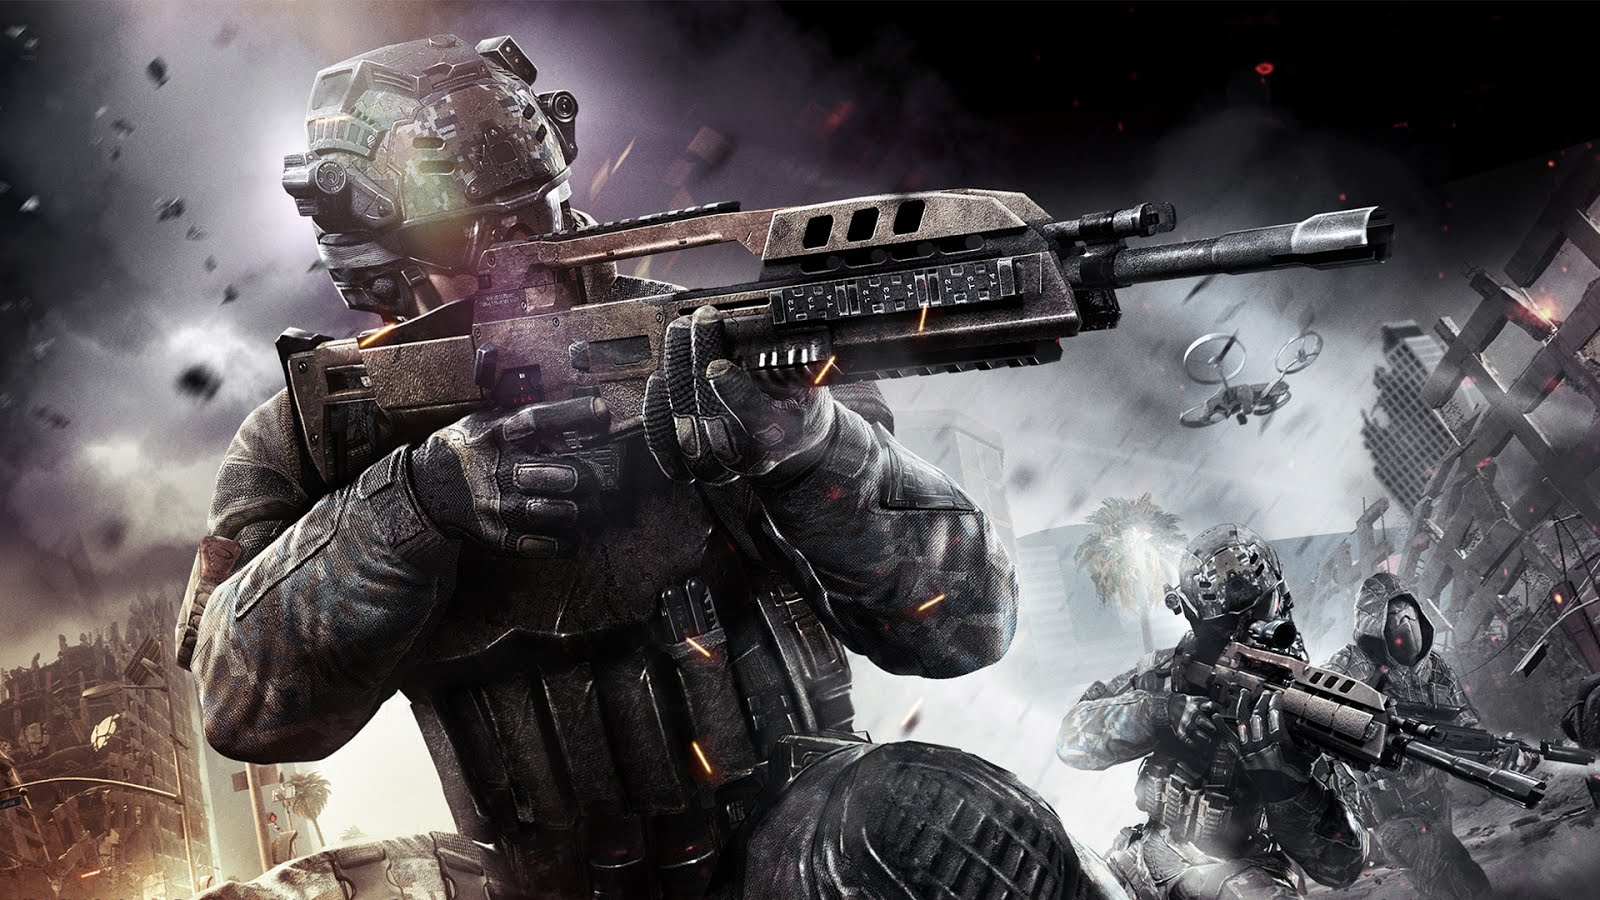 Call of Duty film to be released in 2018